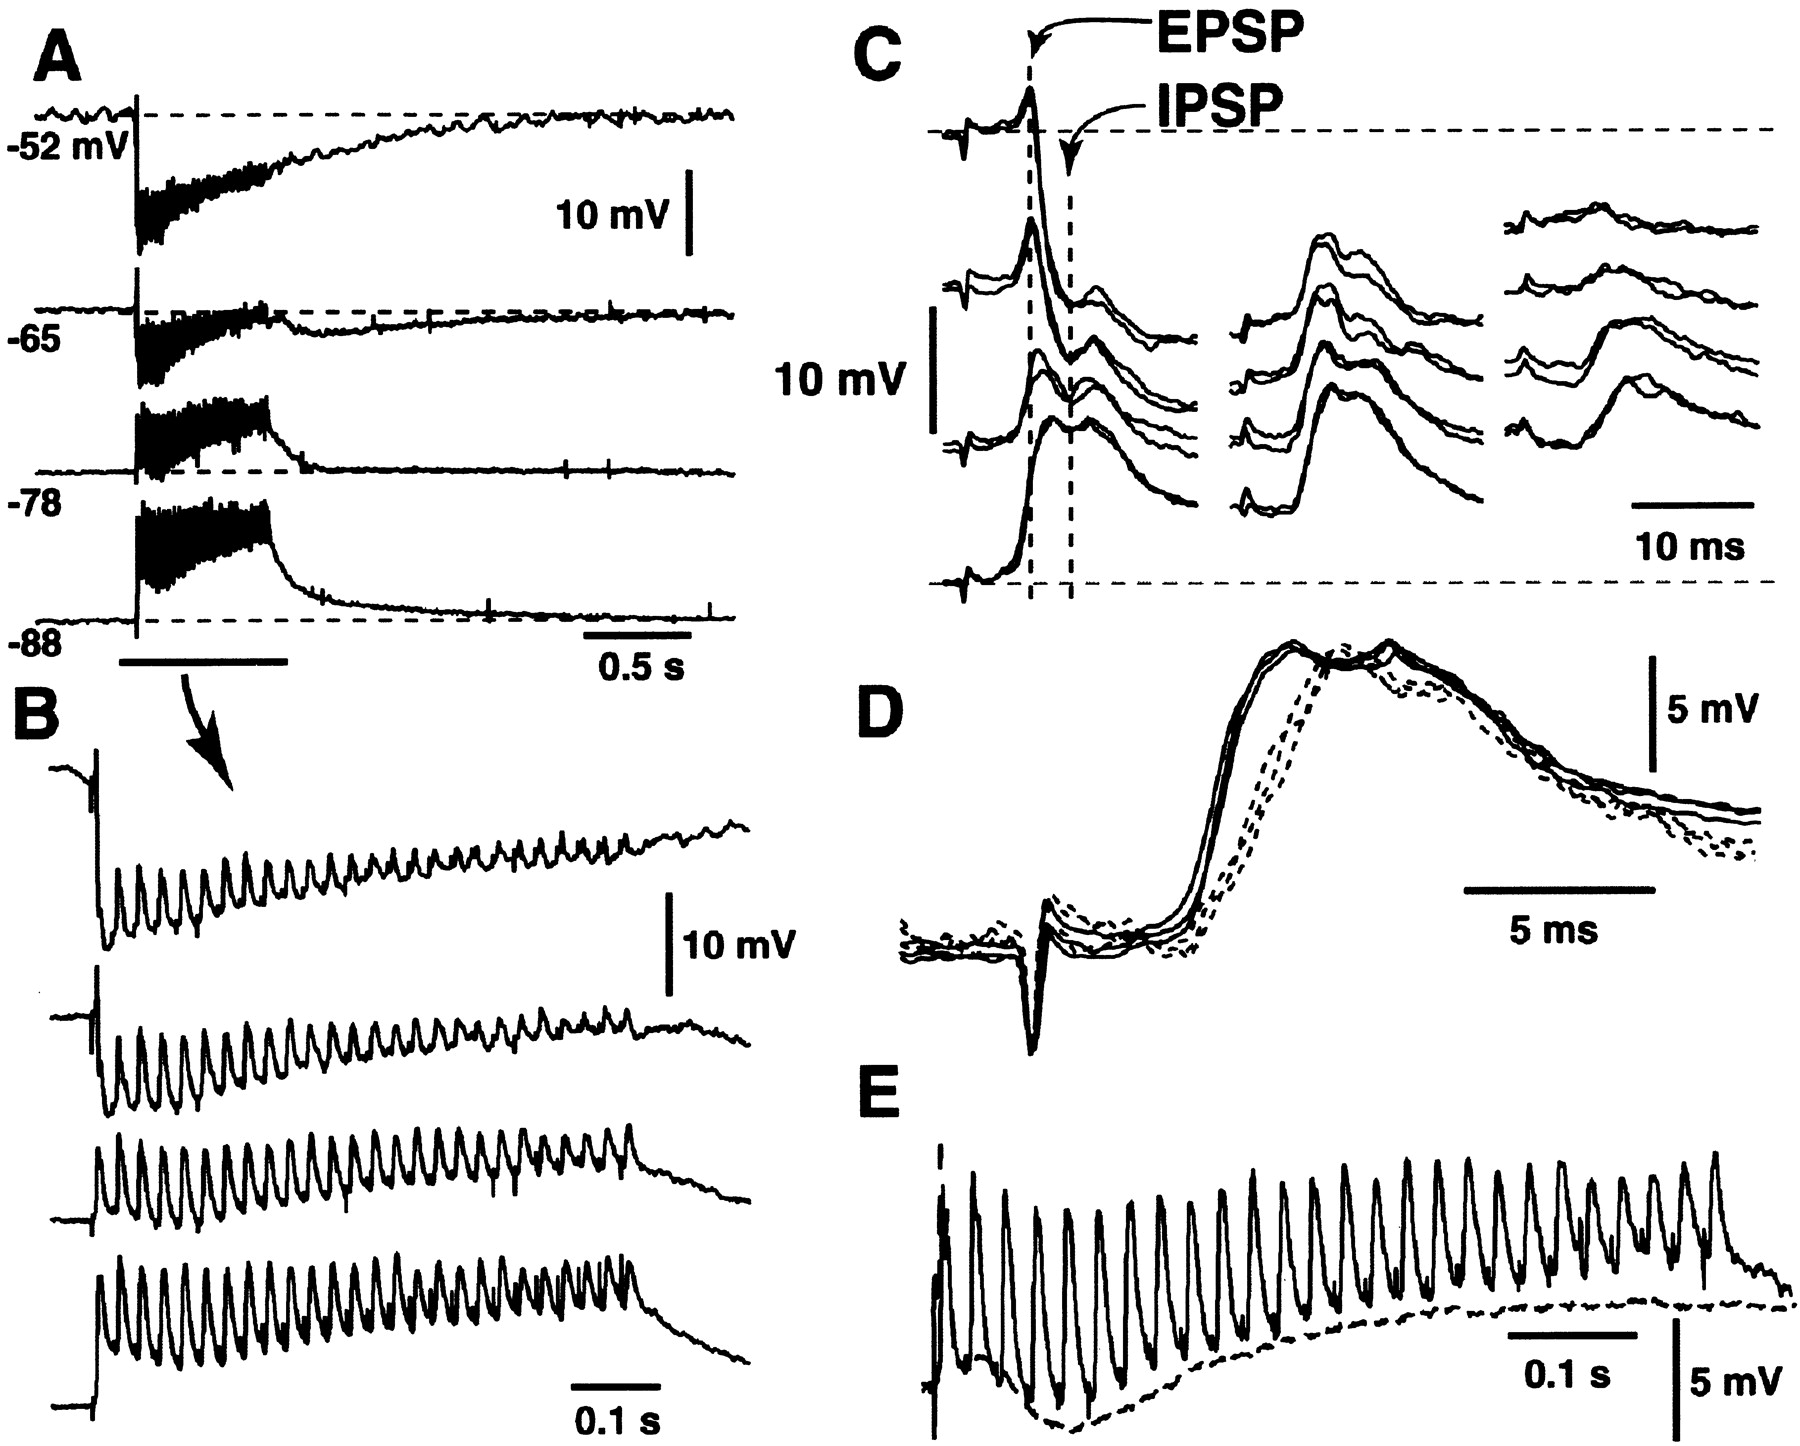 Voltage Sensitive Dye Imaging Of Neocortical Spatiotemporal Dynamics Case Ih Wiring Schematic 1822 Download Figure